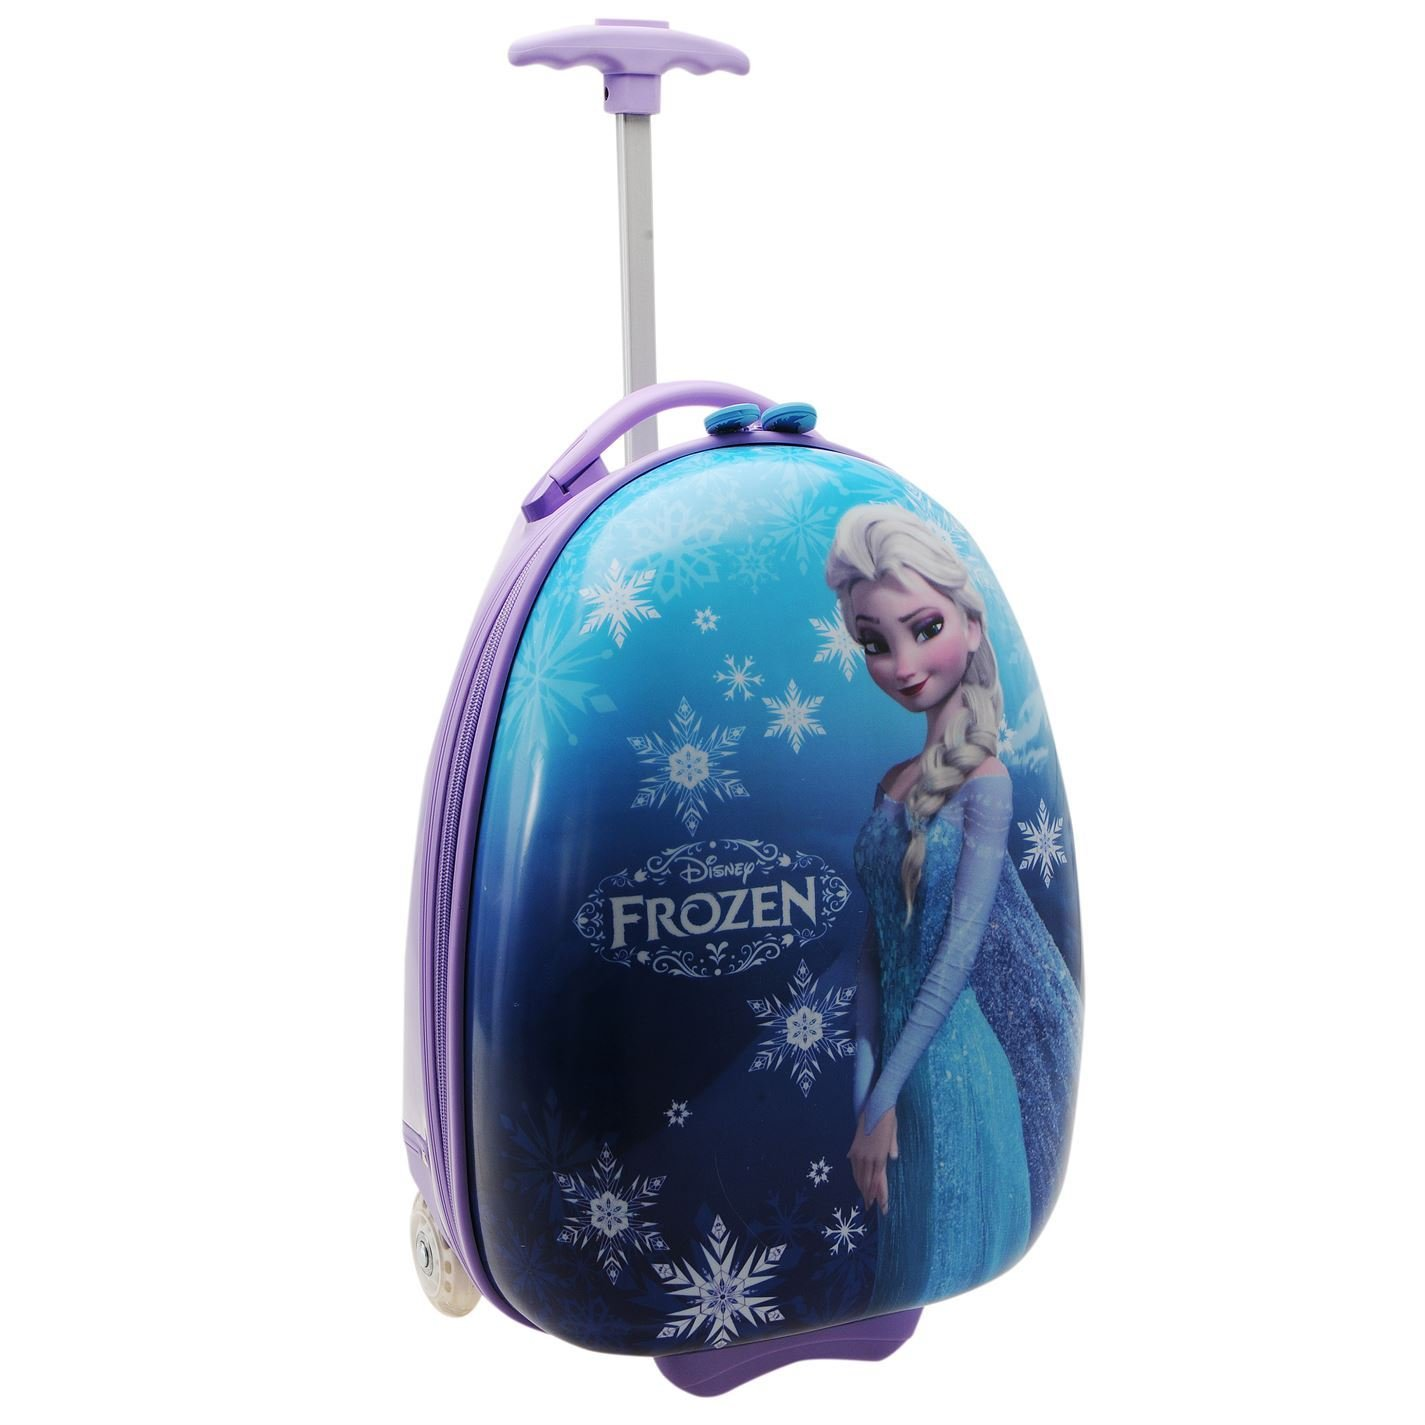 Disney Frozen Elsa Trolley Suitcase Childs Blue Kids Travel Luggage Bag Case 19in/48cm by Disney Frozen